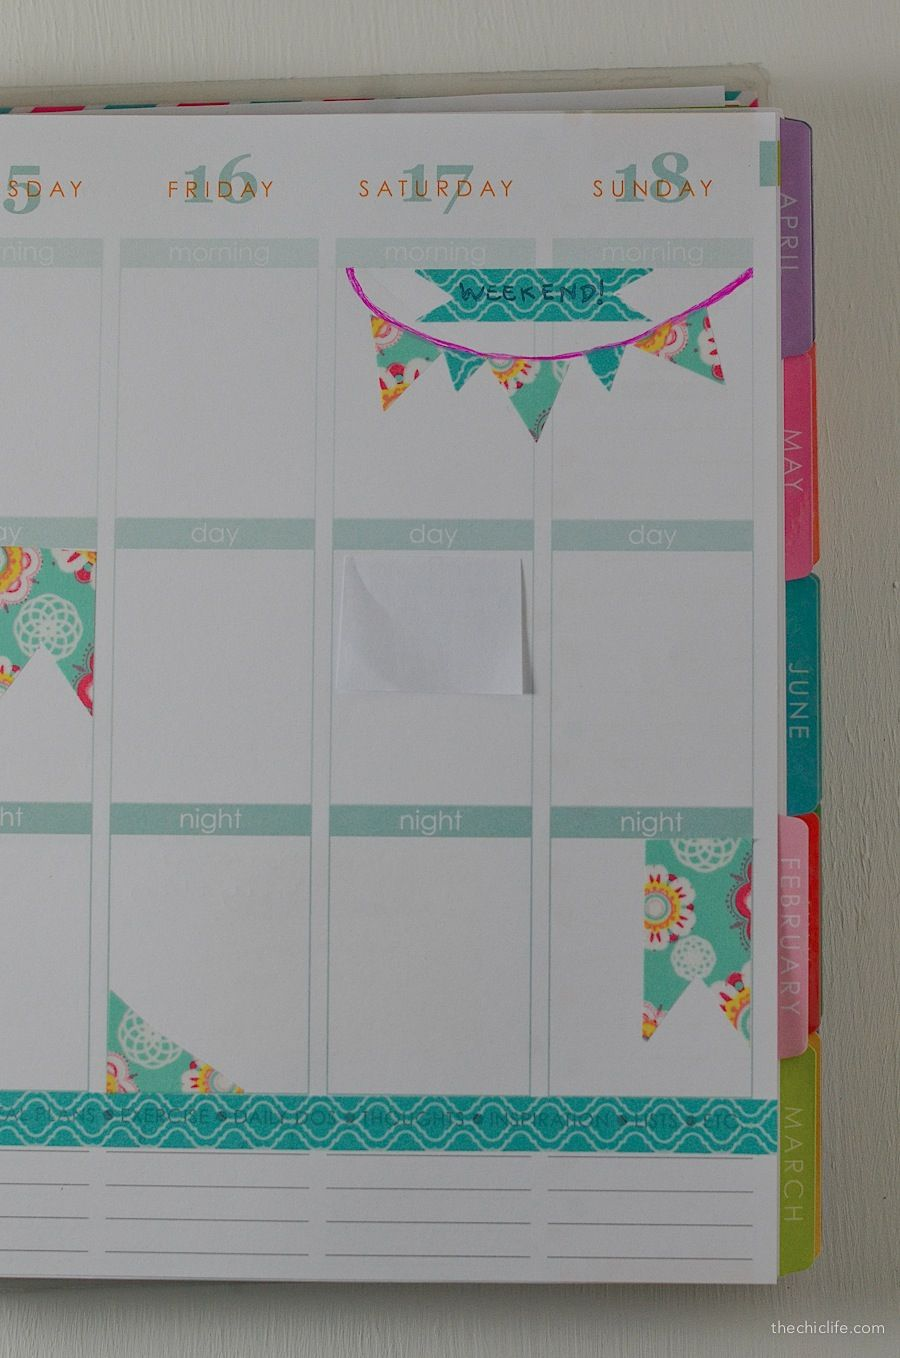 How To Decorate Your Planner With Washi Tape Washi Tape